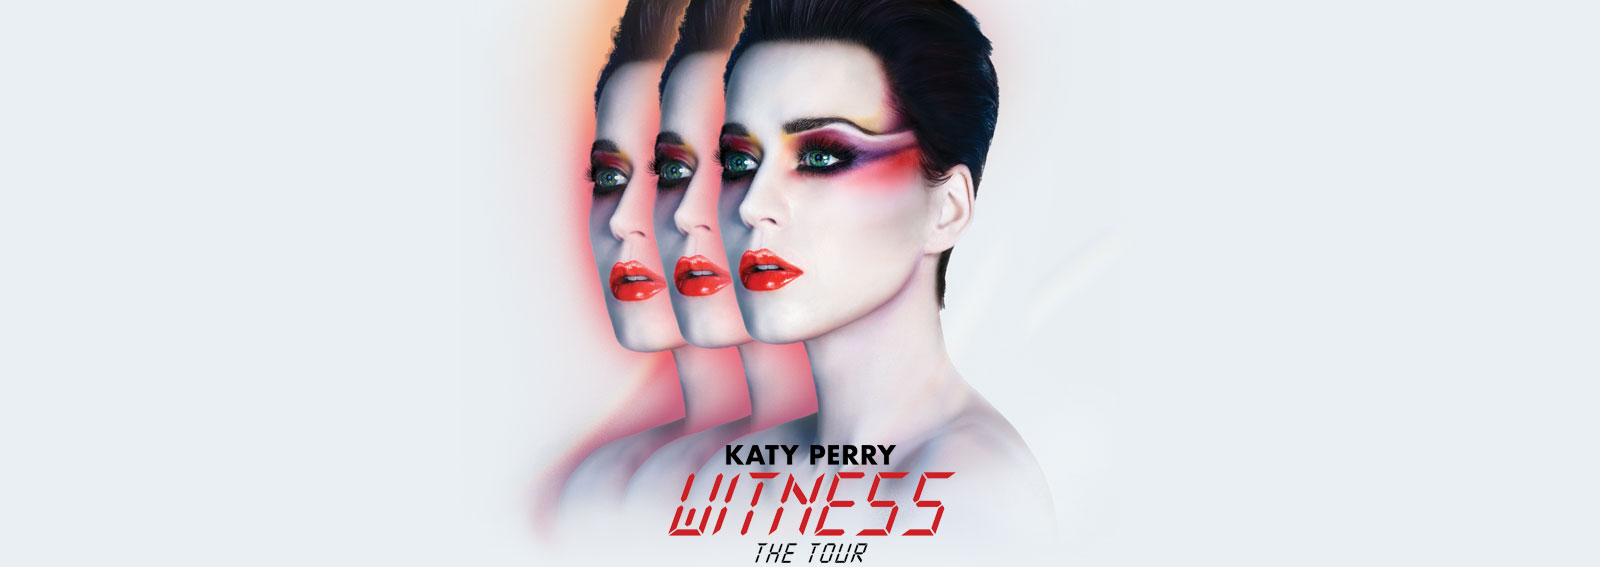 Katy Perry Hydro 24th June 2018